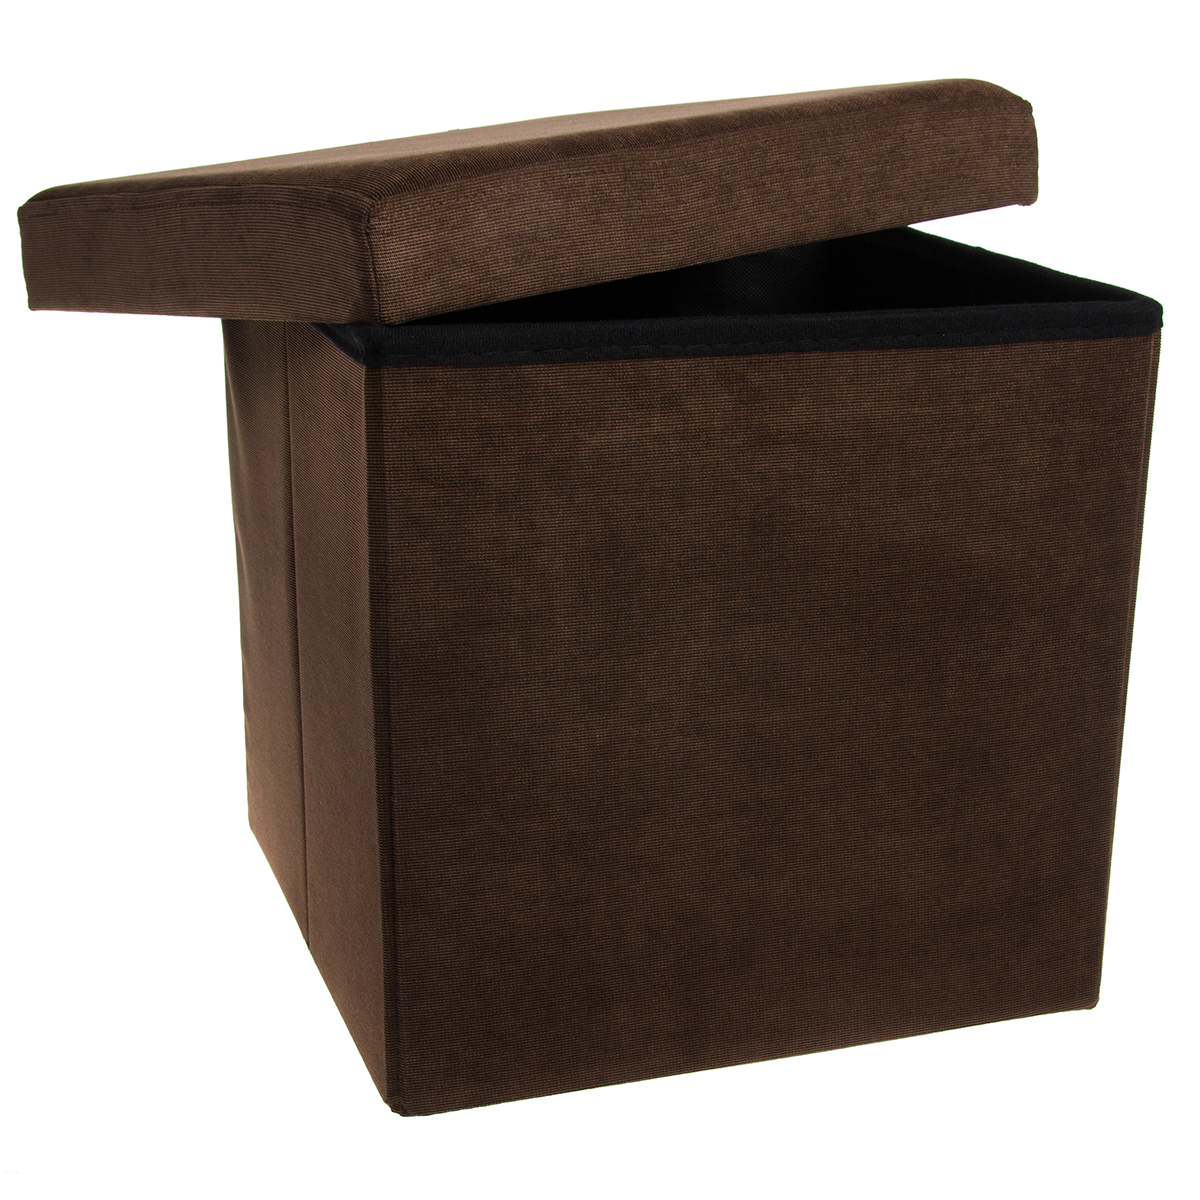 Coffee Table Footrest Storage: Storage Ottoman Cube Folding Fabric Square Foot Rest